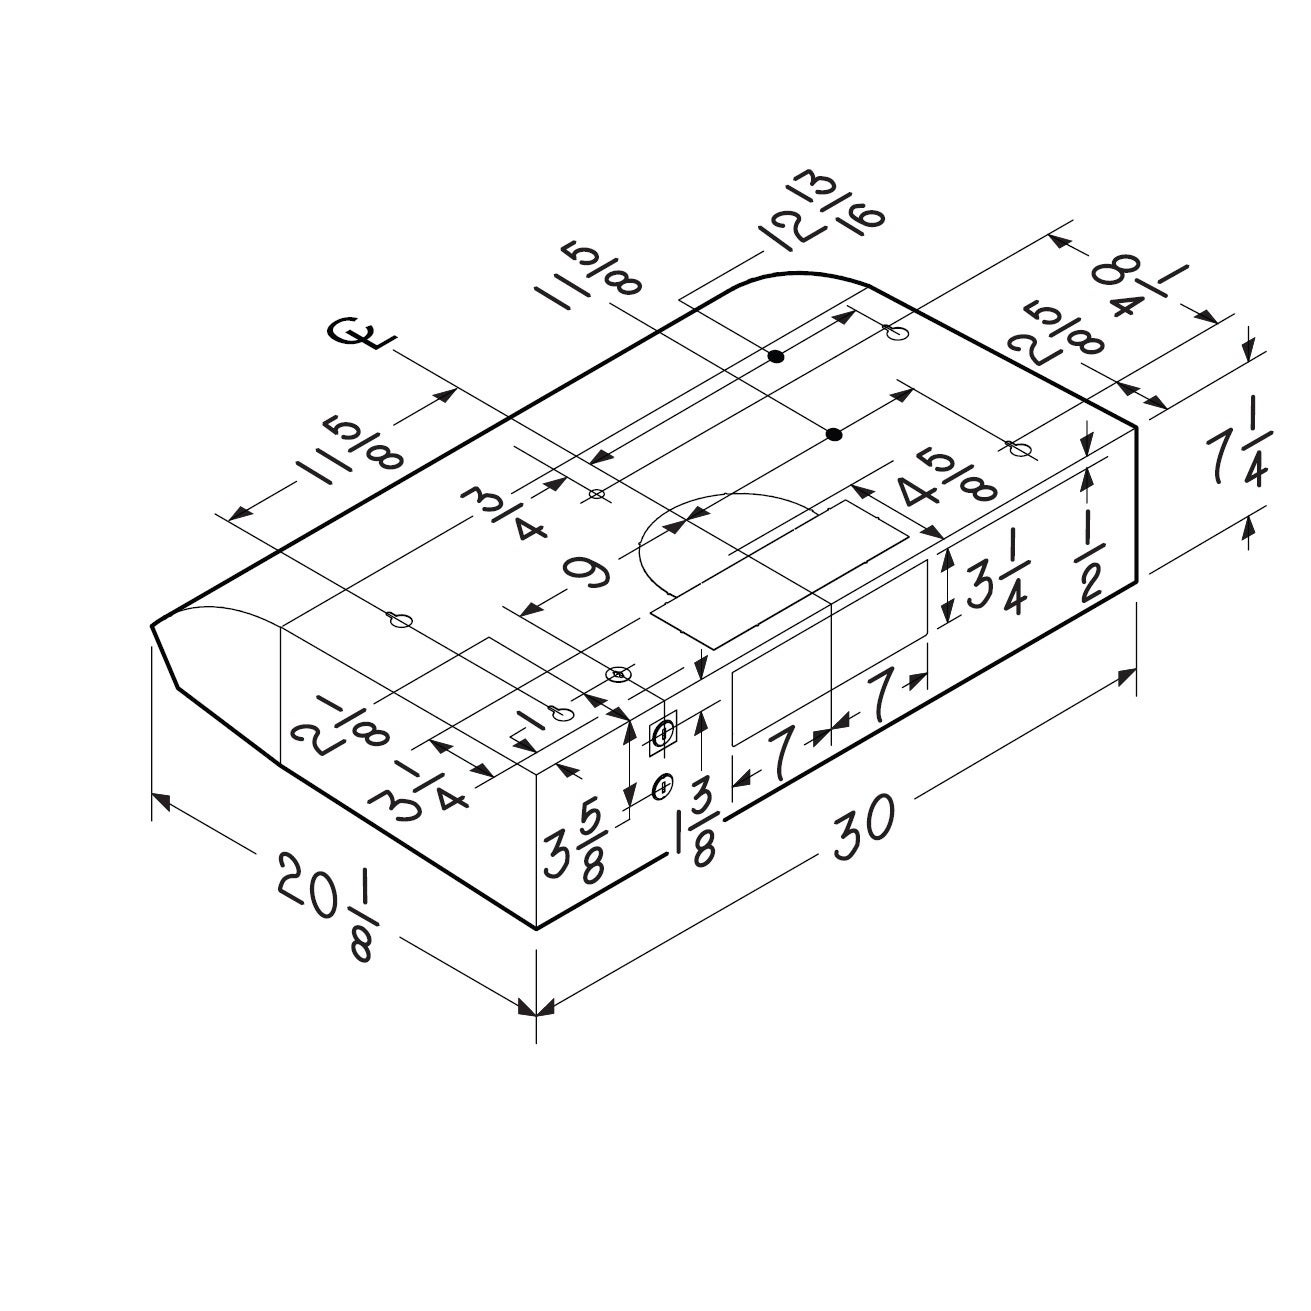 Broan Wiring Schematics For Qp230ss Schematic for Battery Zephyr Range Hoods Broan Evolution QP2 Series 2 QP230SS Lowe s Schematic for Speakers